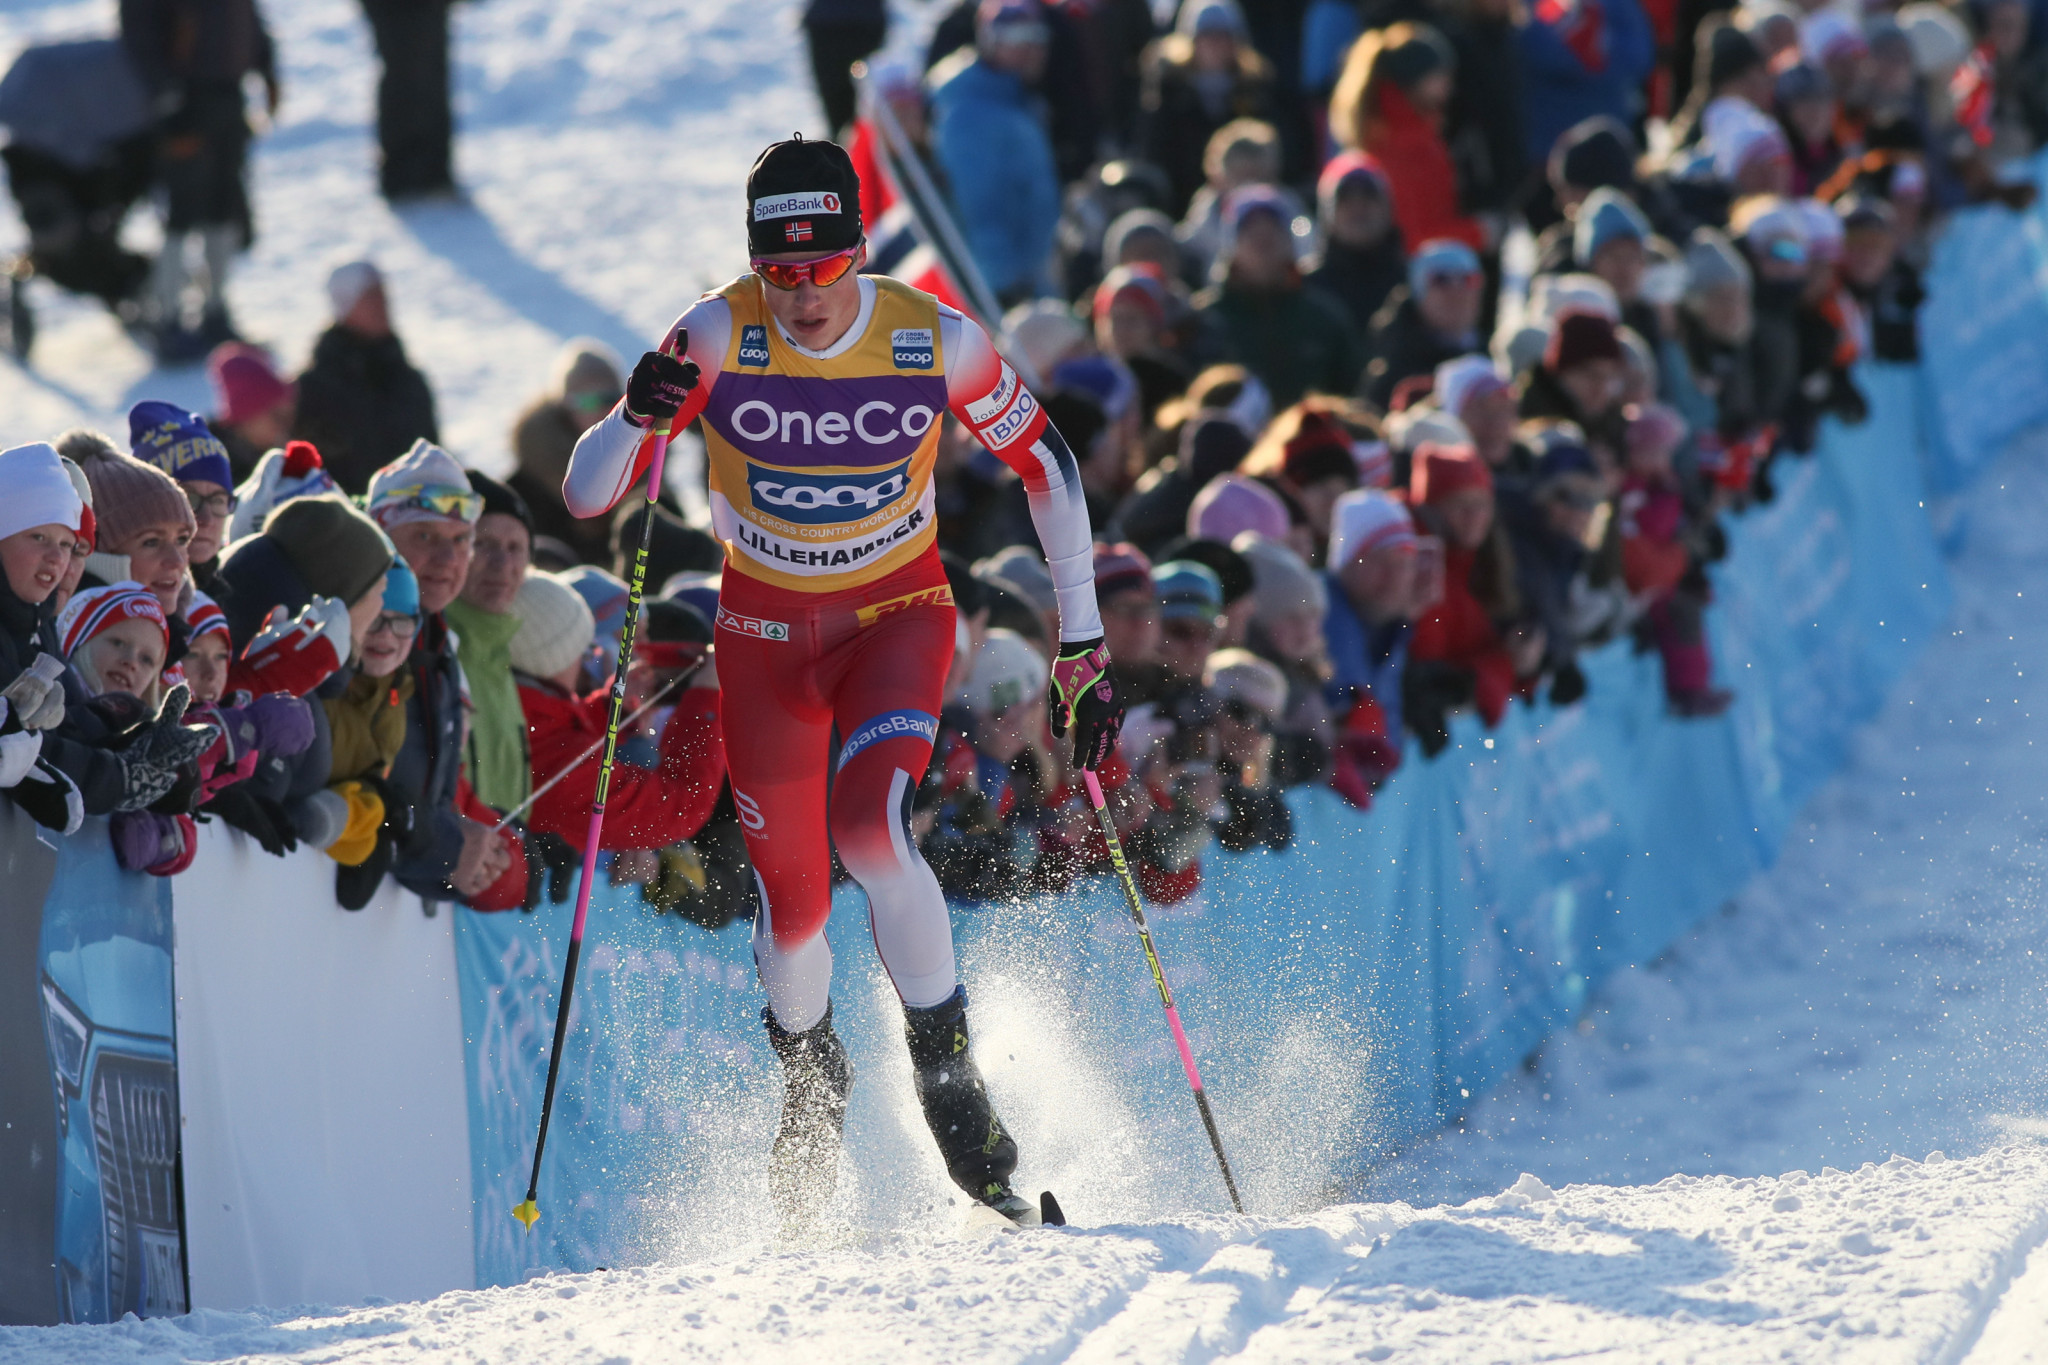 Klæbo looking to extend lead in FIS Cross-Country World Cup standings in Planica